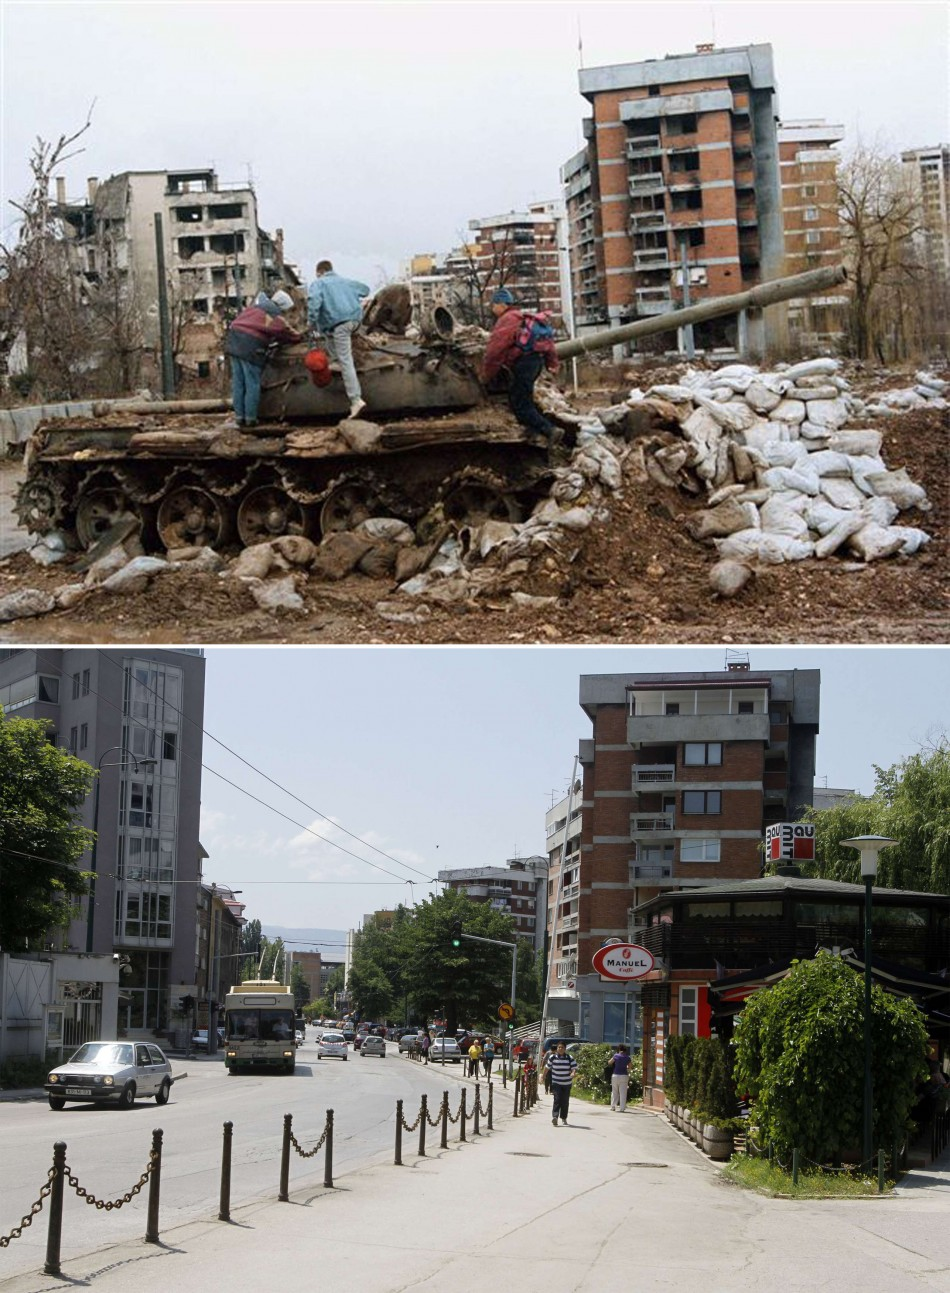 Combo photo shows disused tank standing at crossroad in front of ruined building in Kovacici district in Sarajevo people walking along same road today